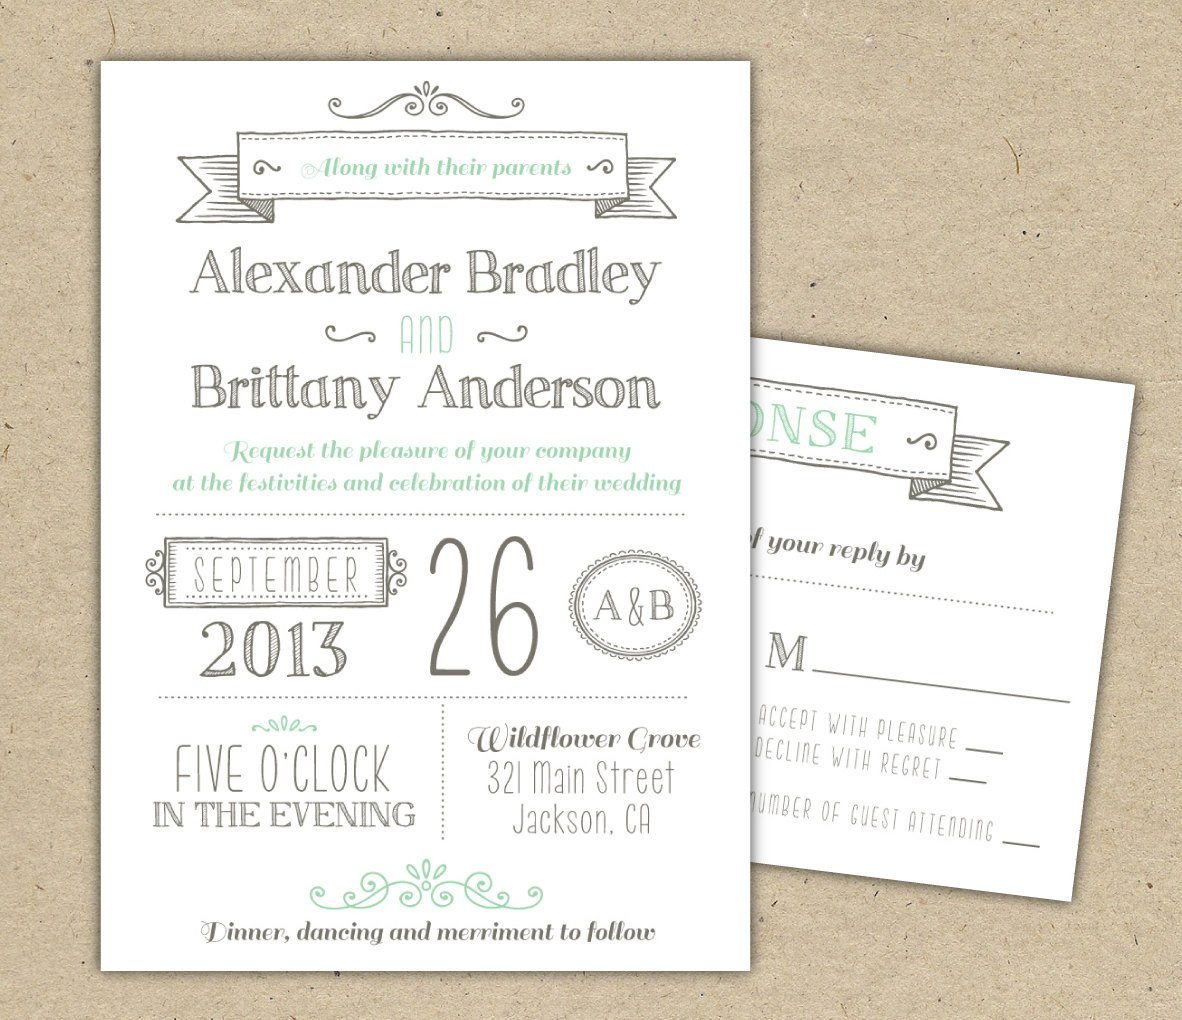 Sample Wedding Invitations Templates Wedding Invitation 1041 Sample Modern Invitation Template